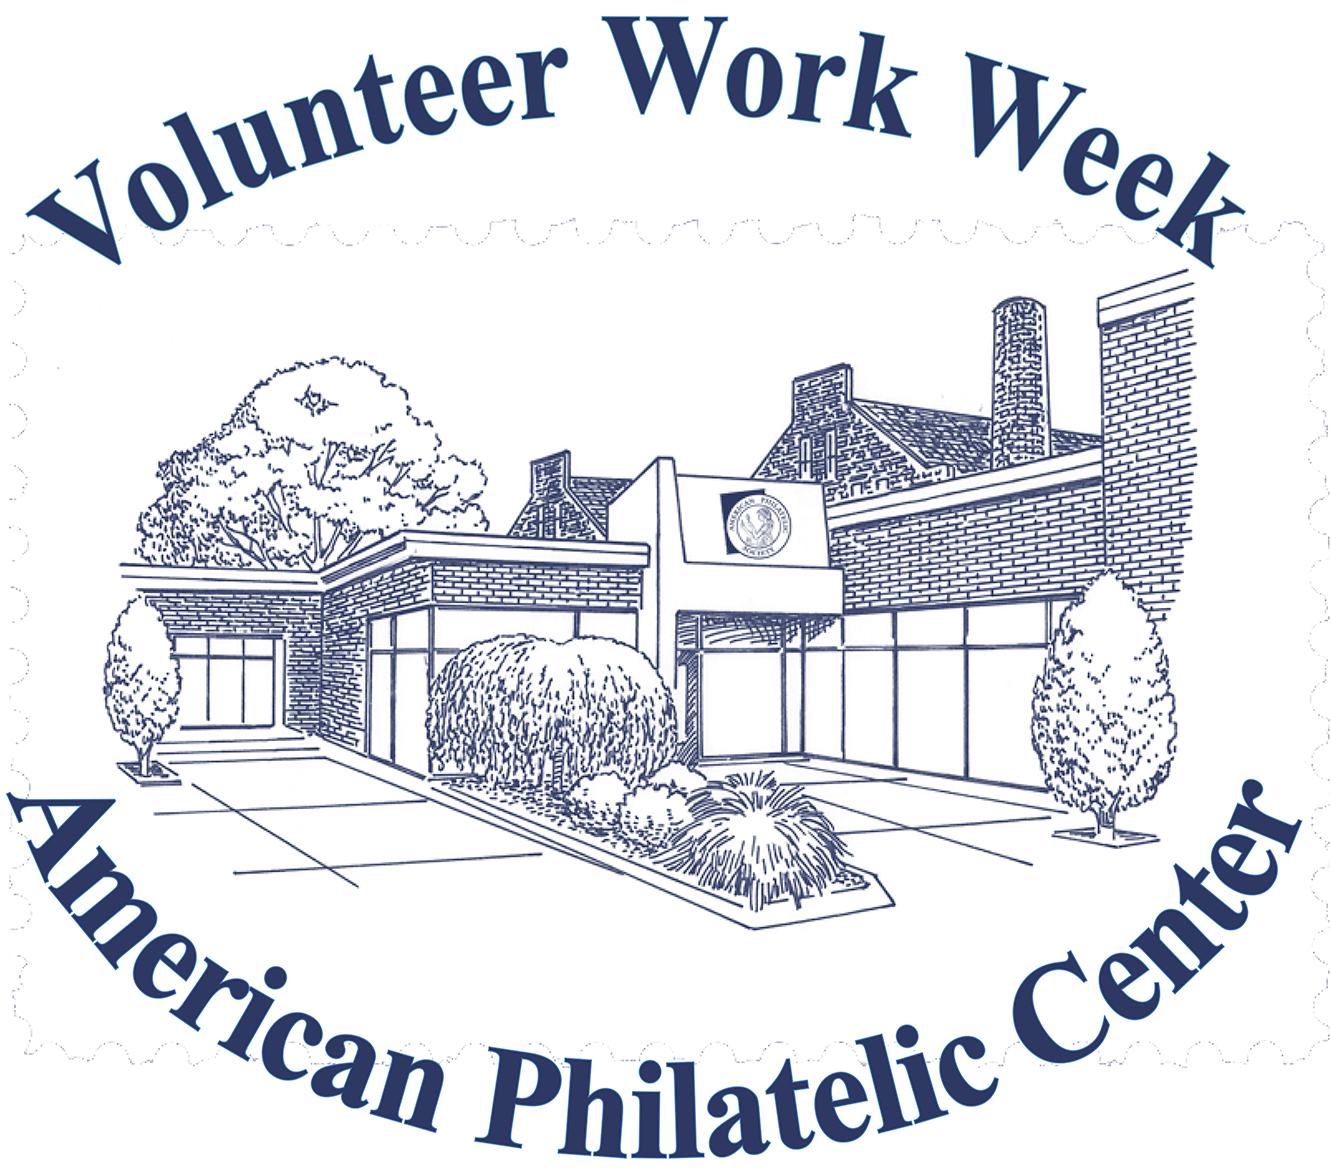 Volunteer Work Week Logo